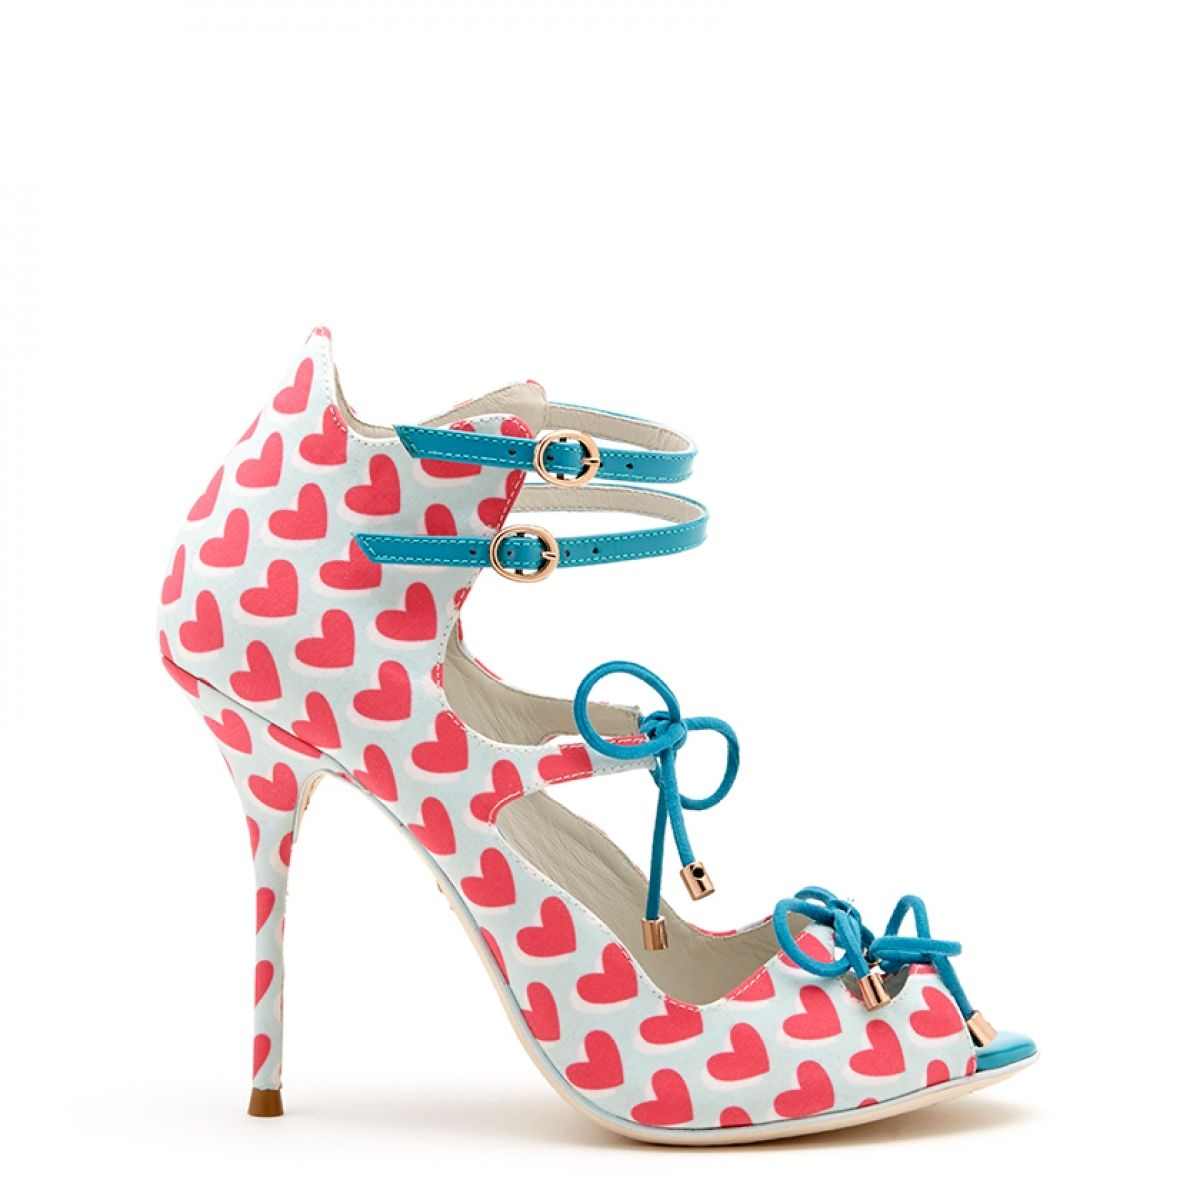 Colorful and Feminin Spring Summer 2014 Shoes Collection by Sophia Webster